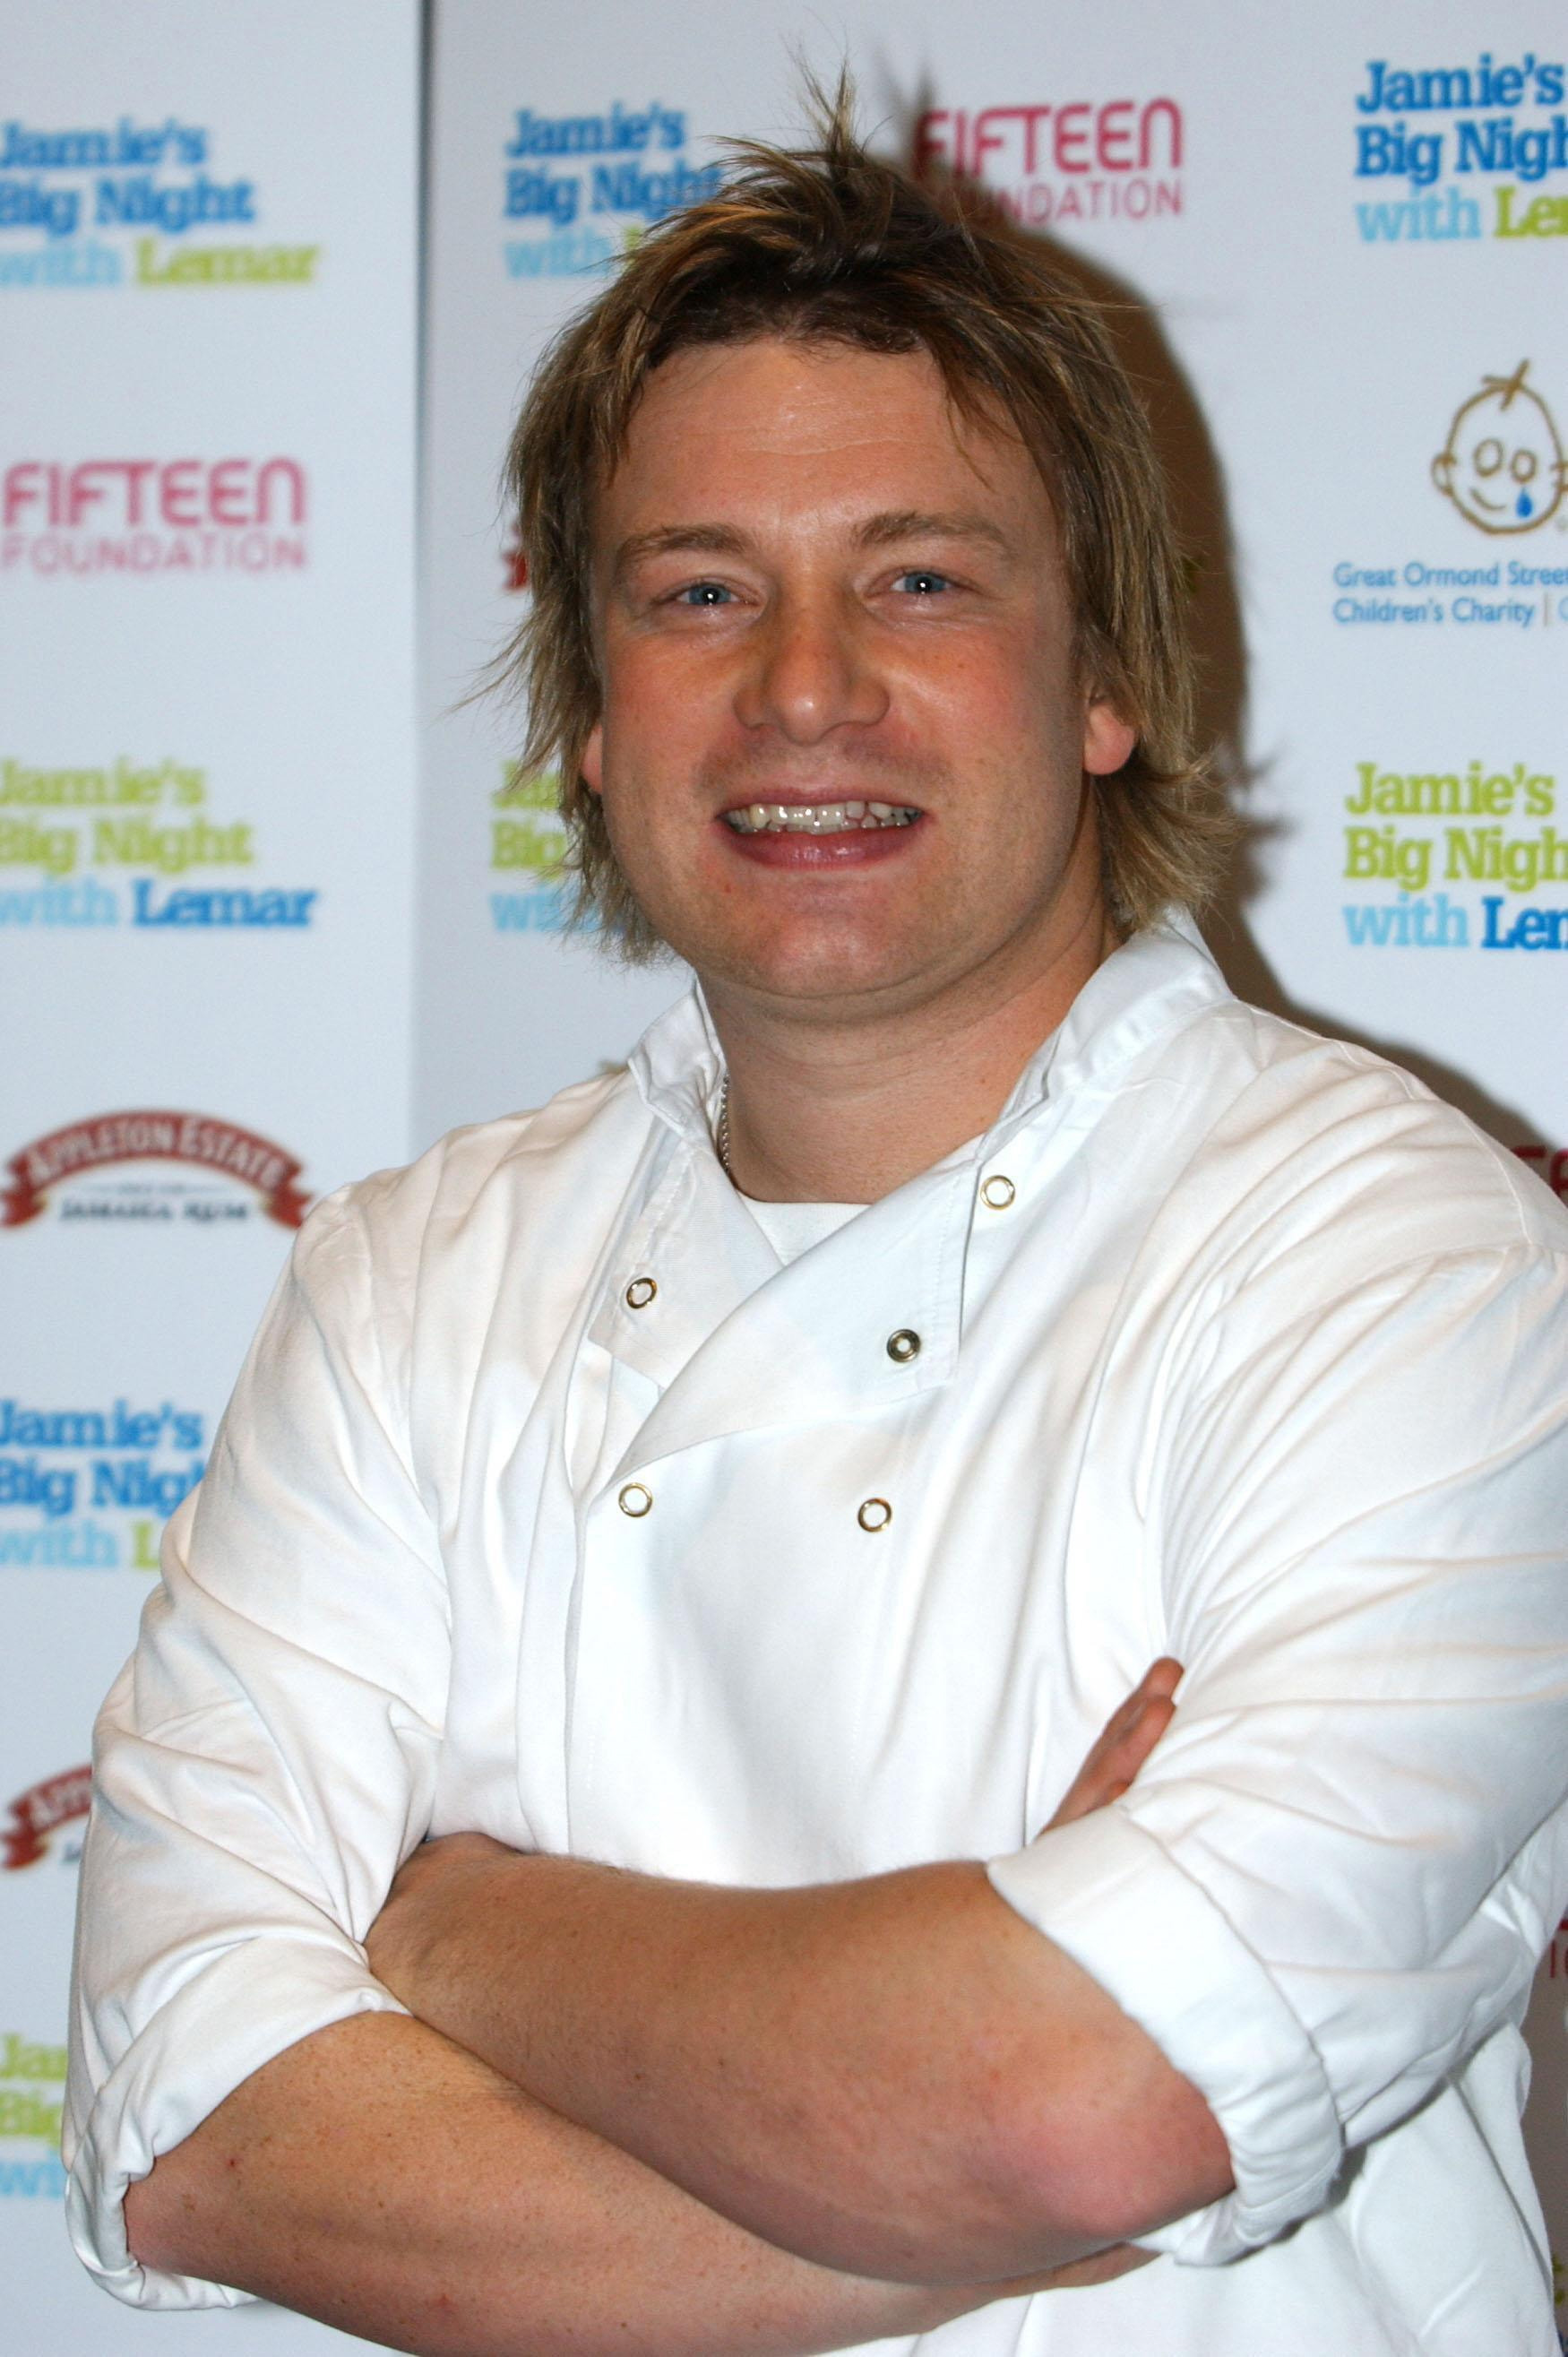 Jamie Oliver to cook at G20 summit